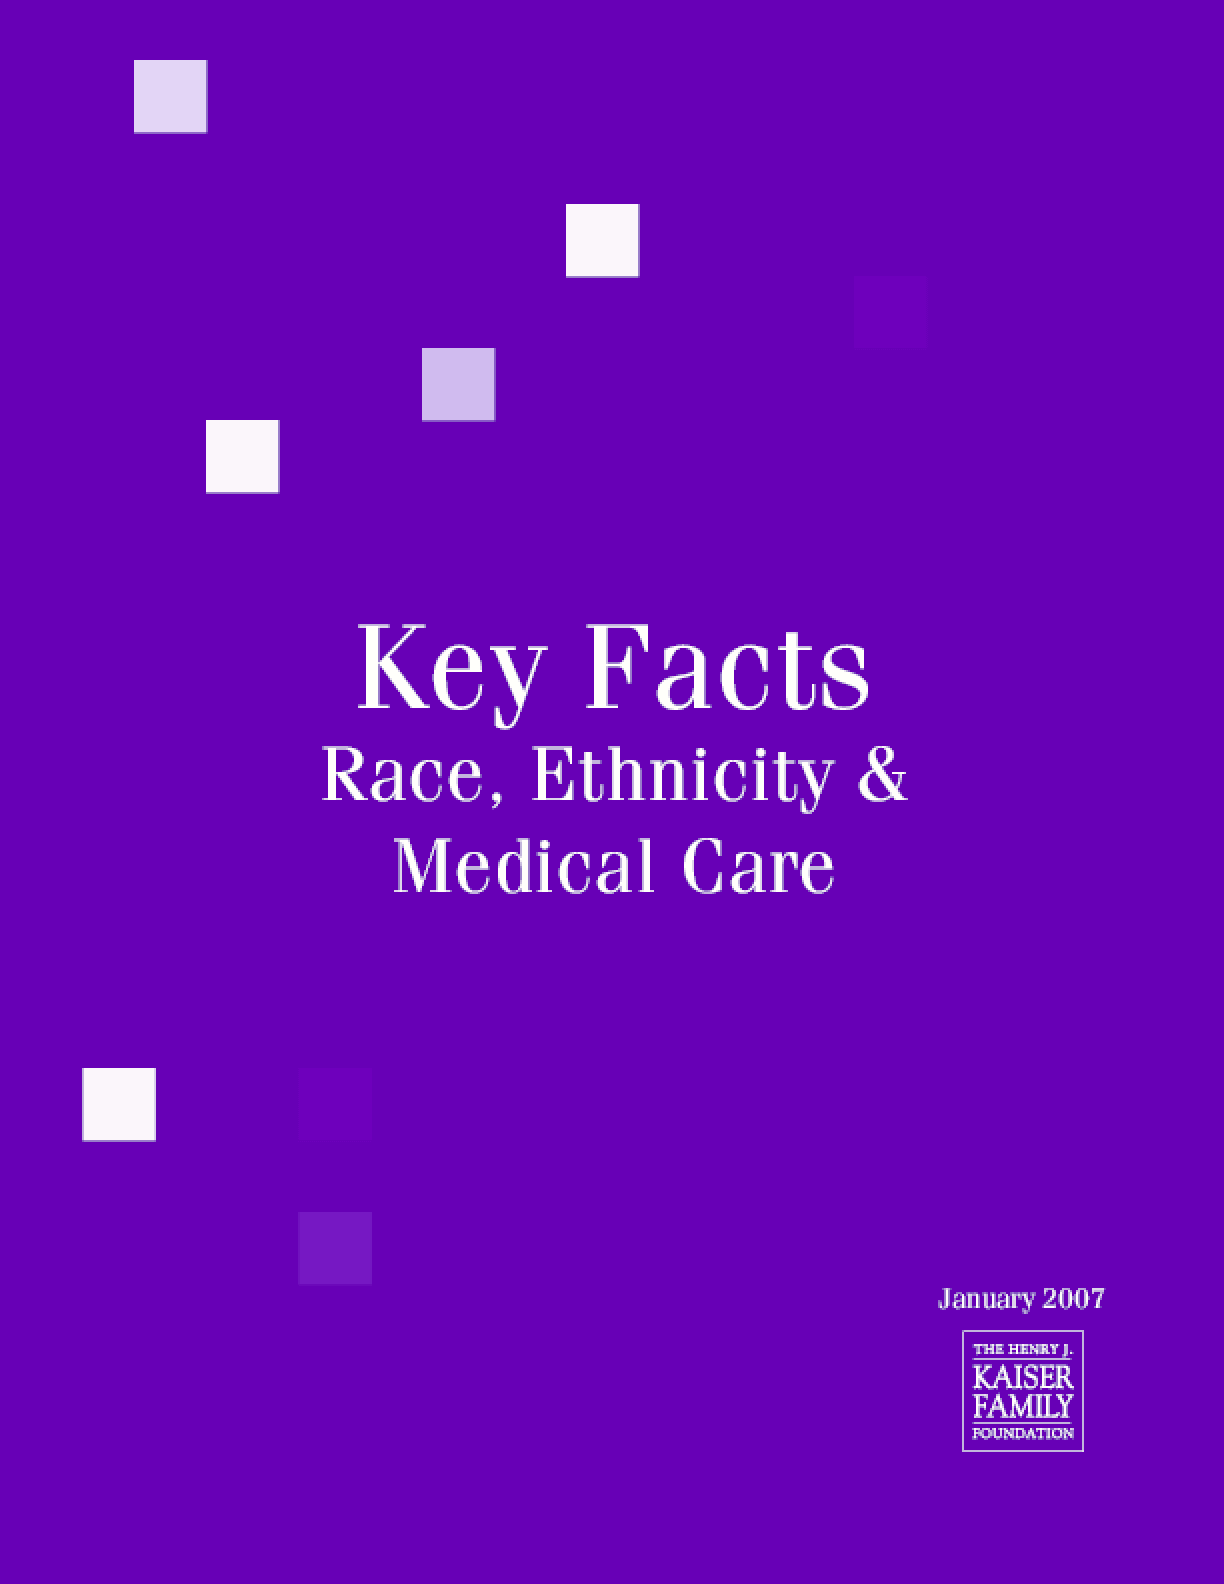 Key Facts: Race, Ethnicity and Medical Care